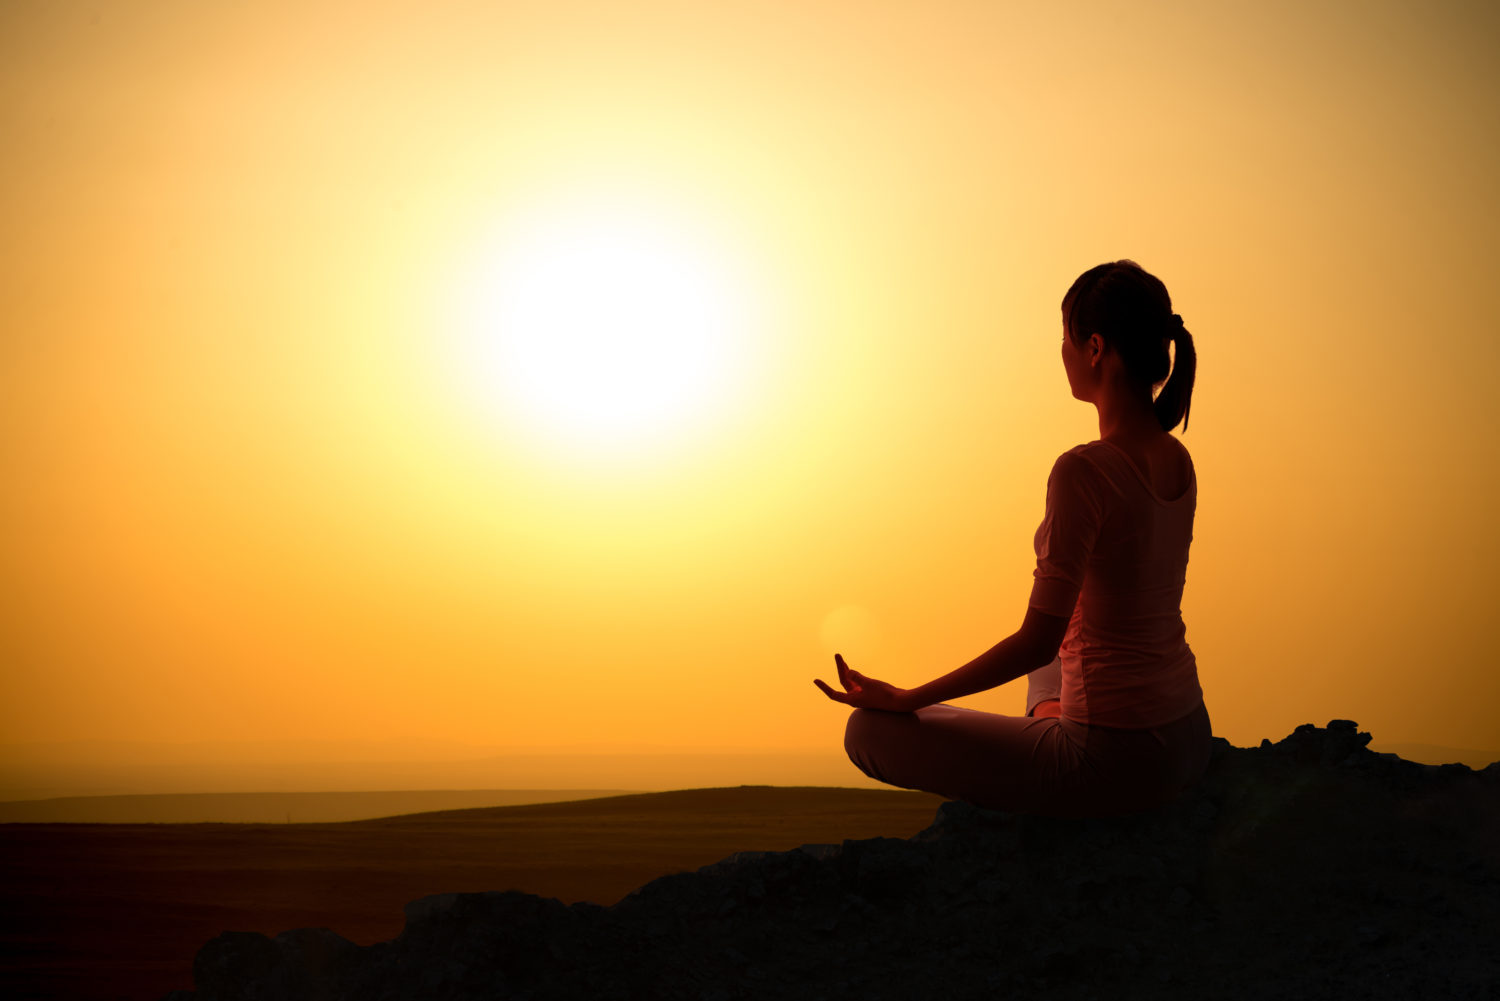 Spiritual Practices Boost Health - 10 Minute Wellness